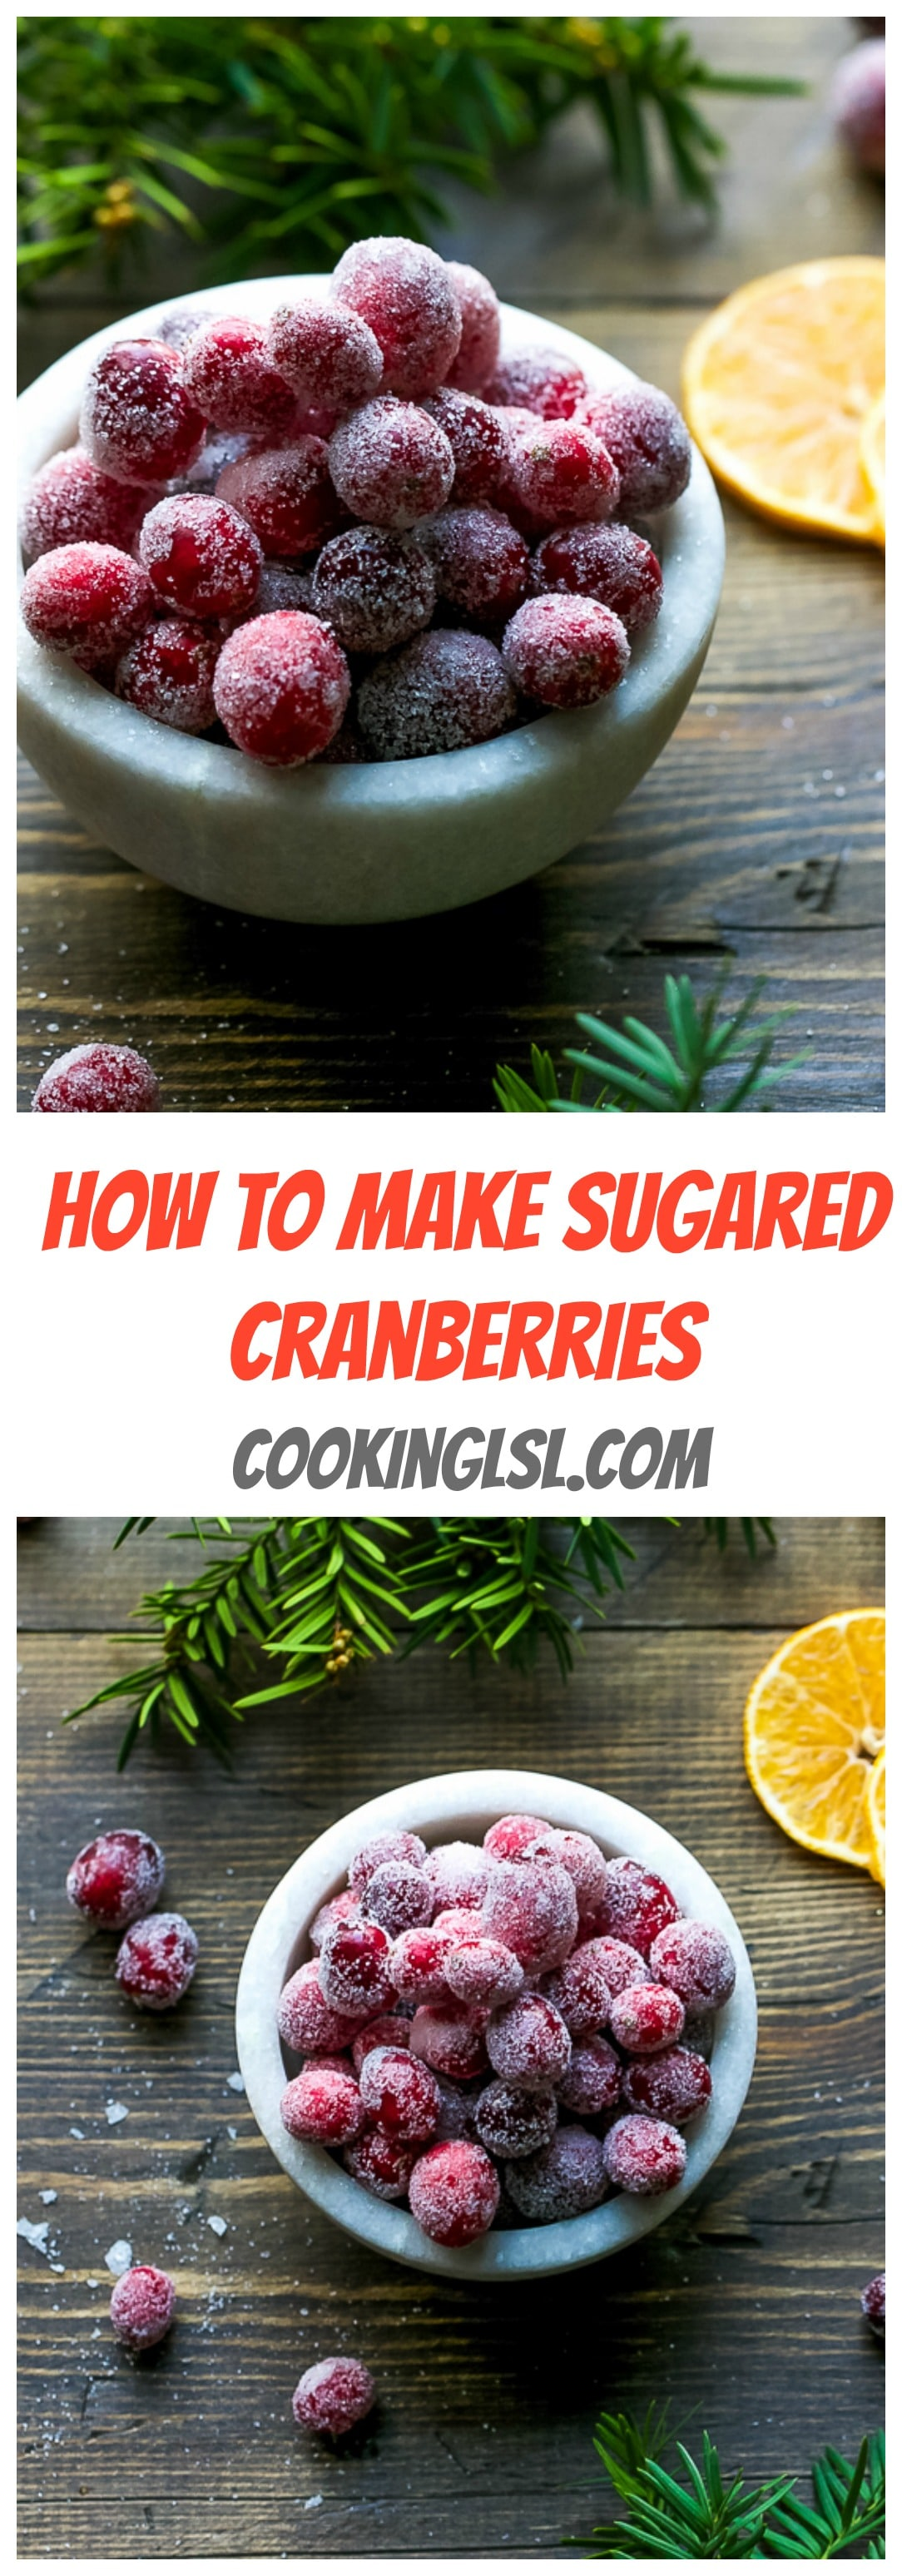 How-To-Make-Sugared-Cranberries